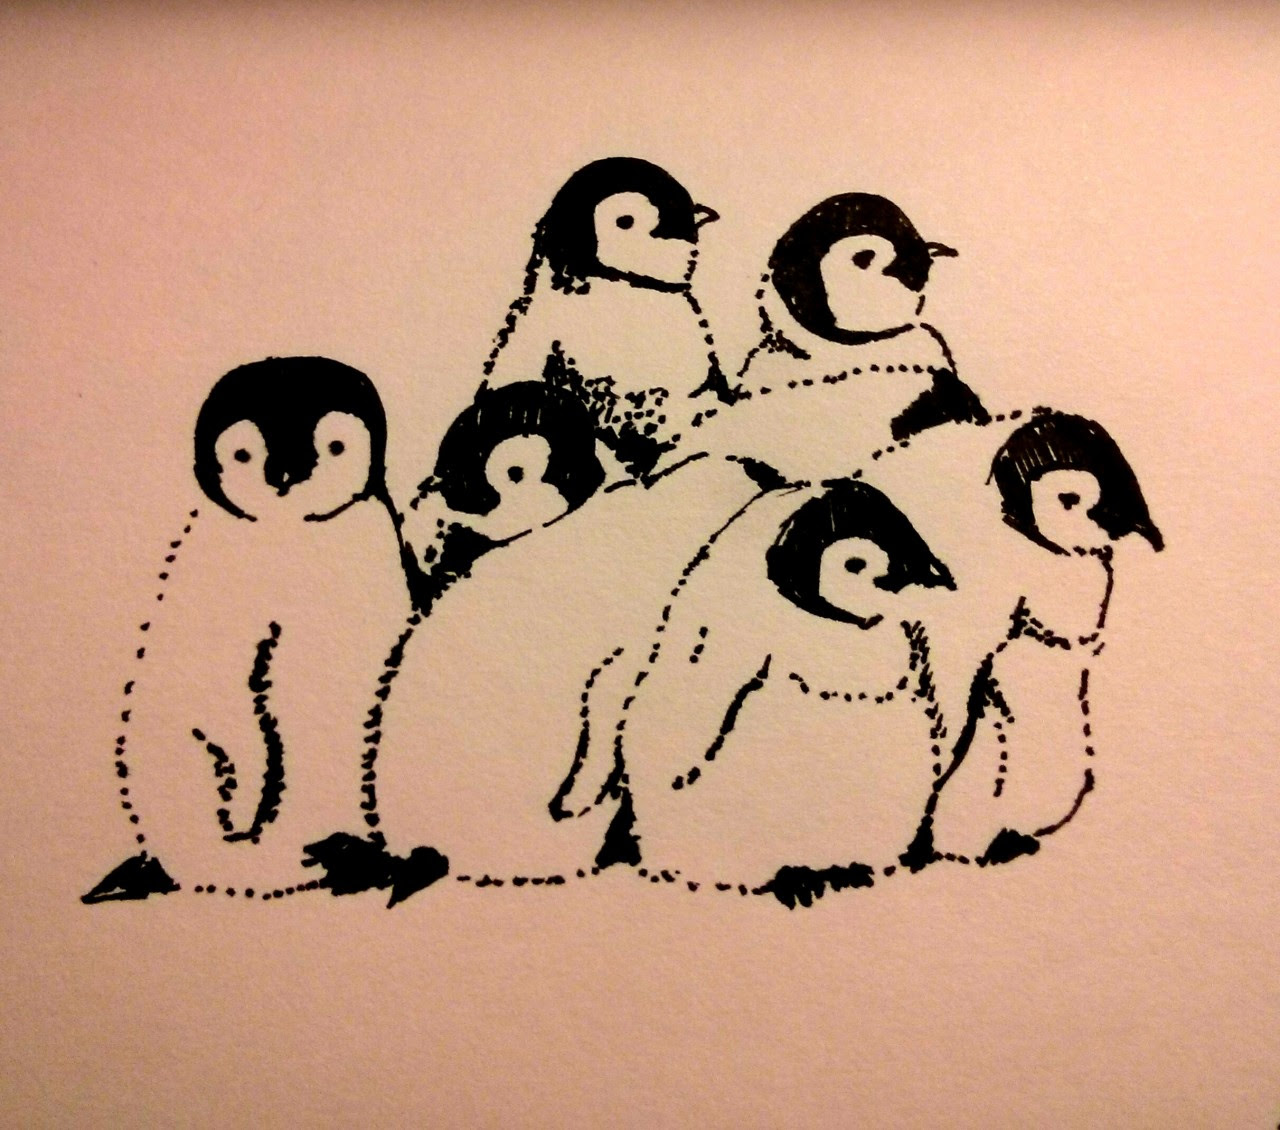 http://hazeyk.tumblr.com/post/73029040568/daily-draw-63-a-pile-of-baby-penguins